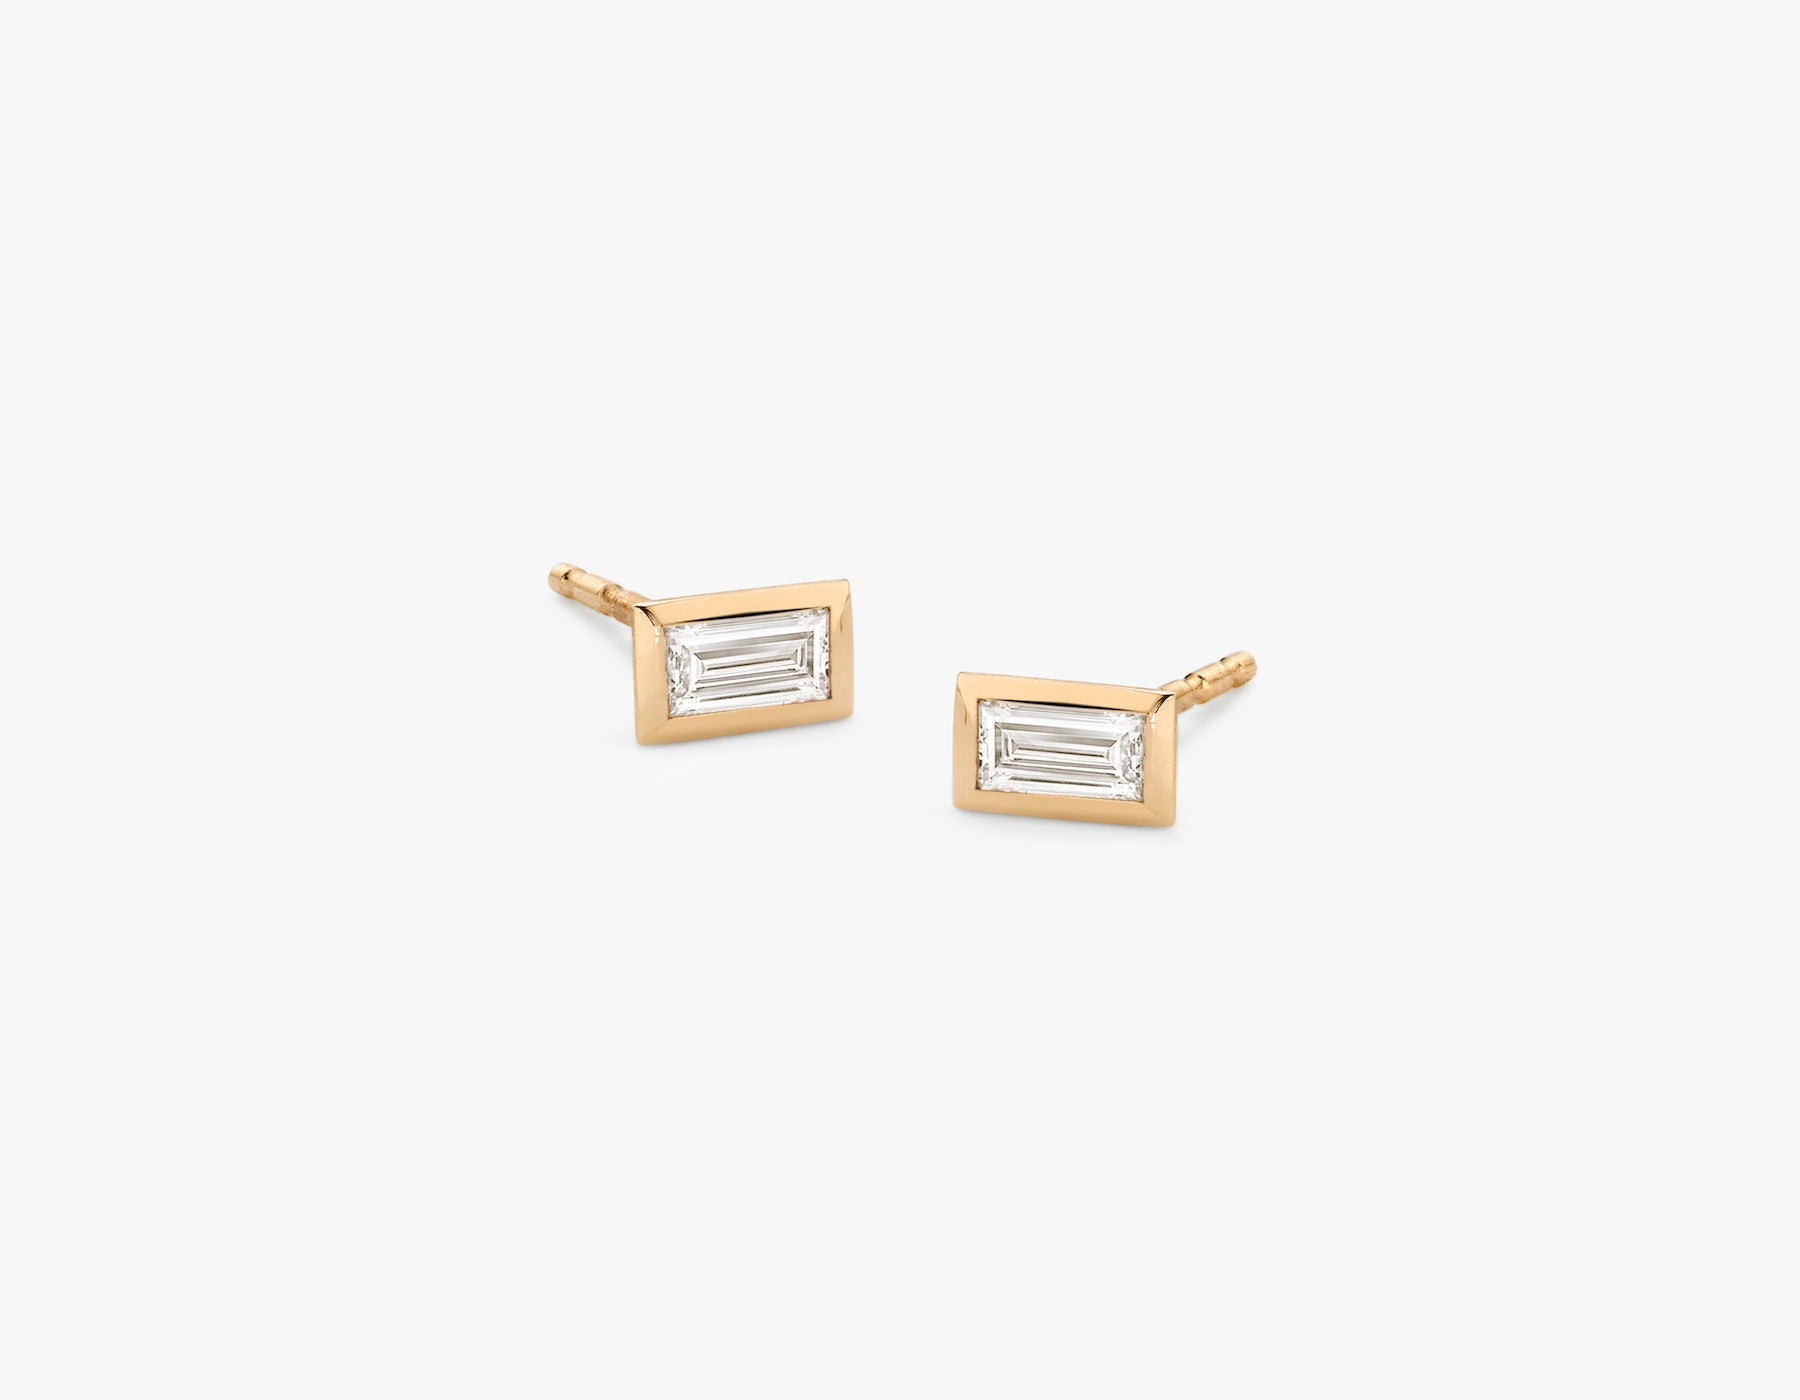 Vrai simple minimalist Baguette Diamond Bezel Earrings, 14K Rose Gold